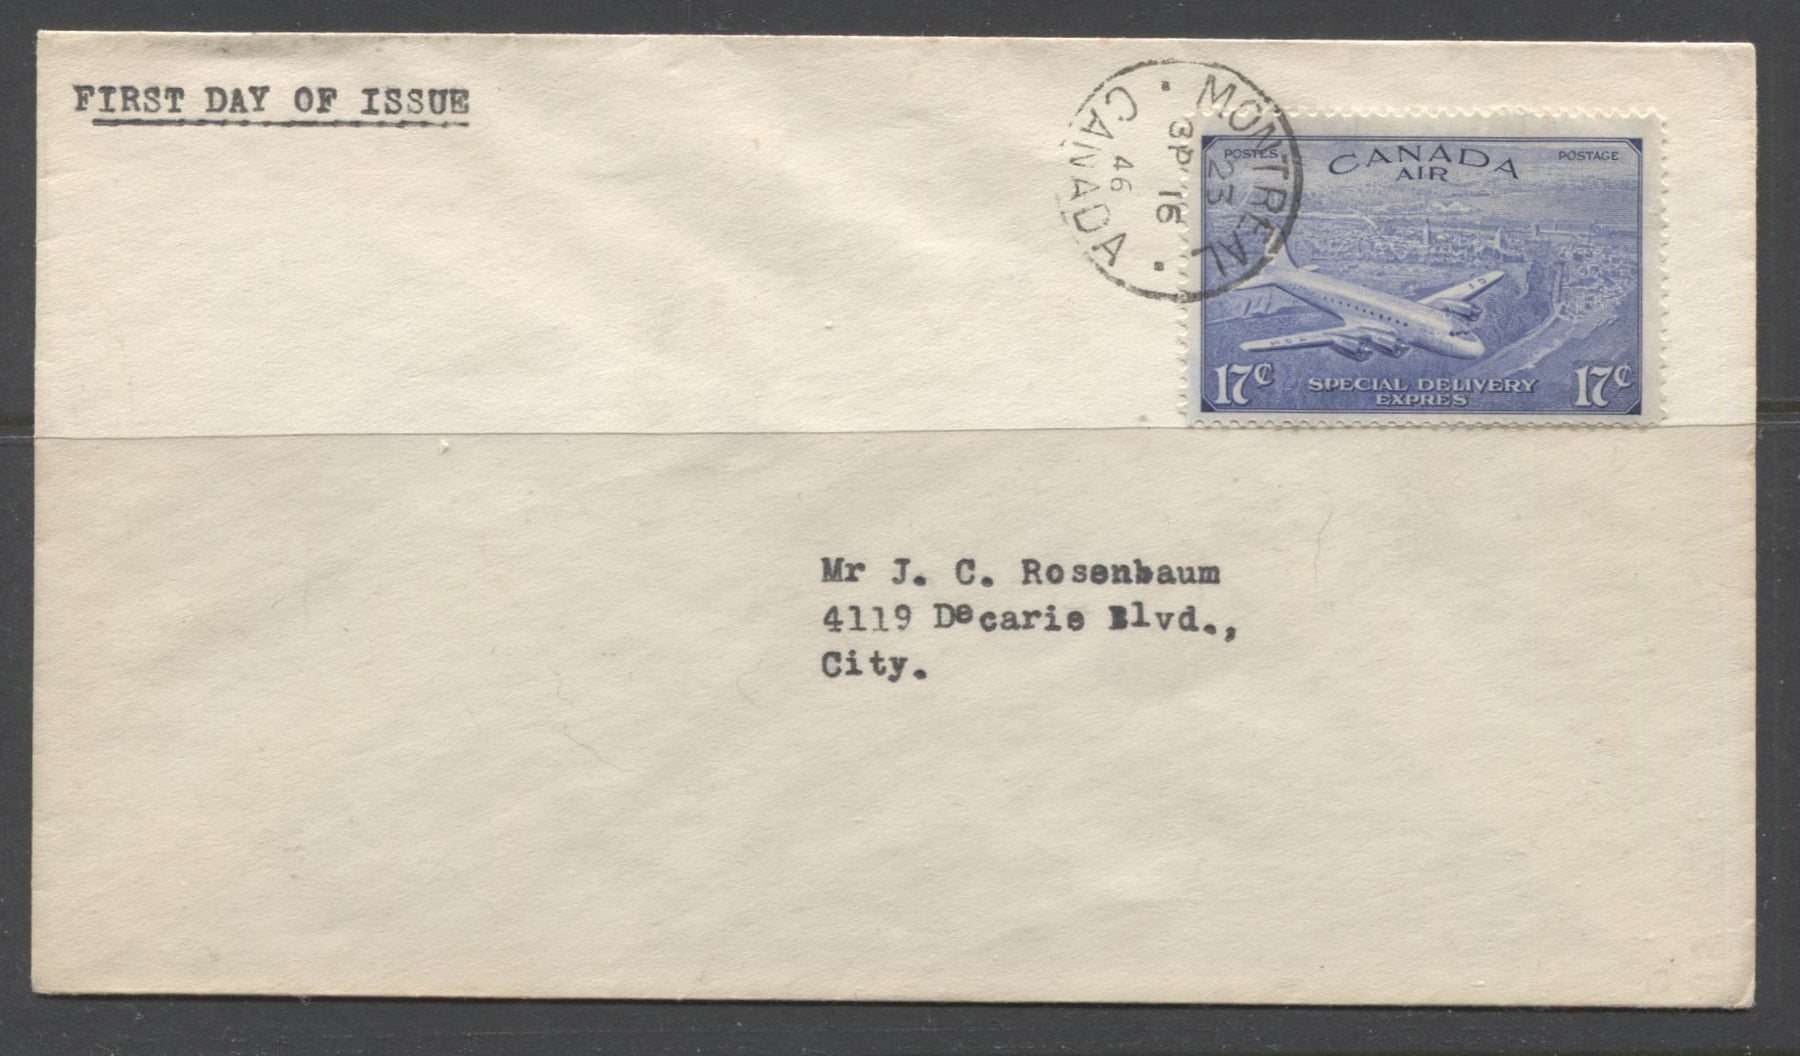 Canada #CE3 17c Deep Ultramarine 1946-1951 Peace Issue, Circumflex Accent, on Very Fine Addressed First Day Cover Brixton Chrome